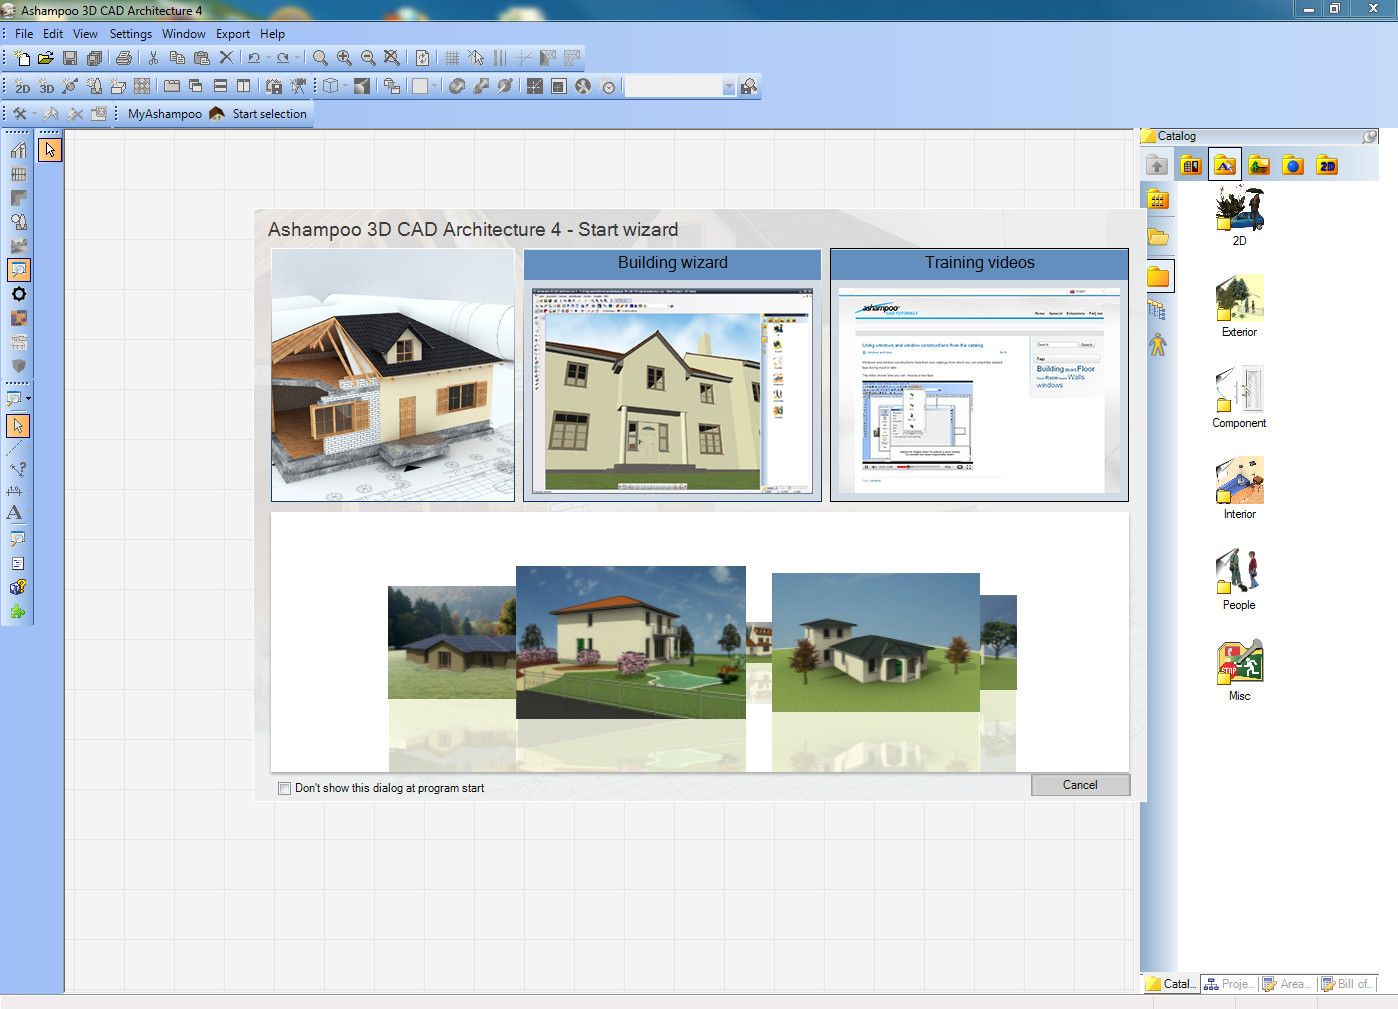 New ashampoo 3d cad architecture 4 best software 4 3d architecture software